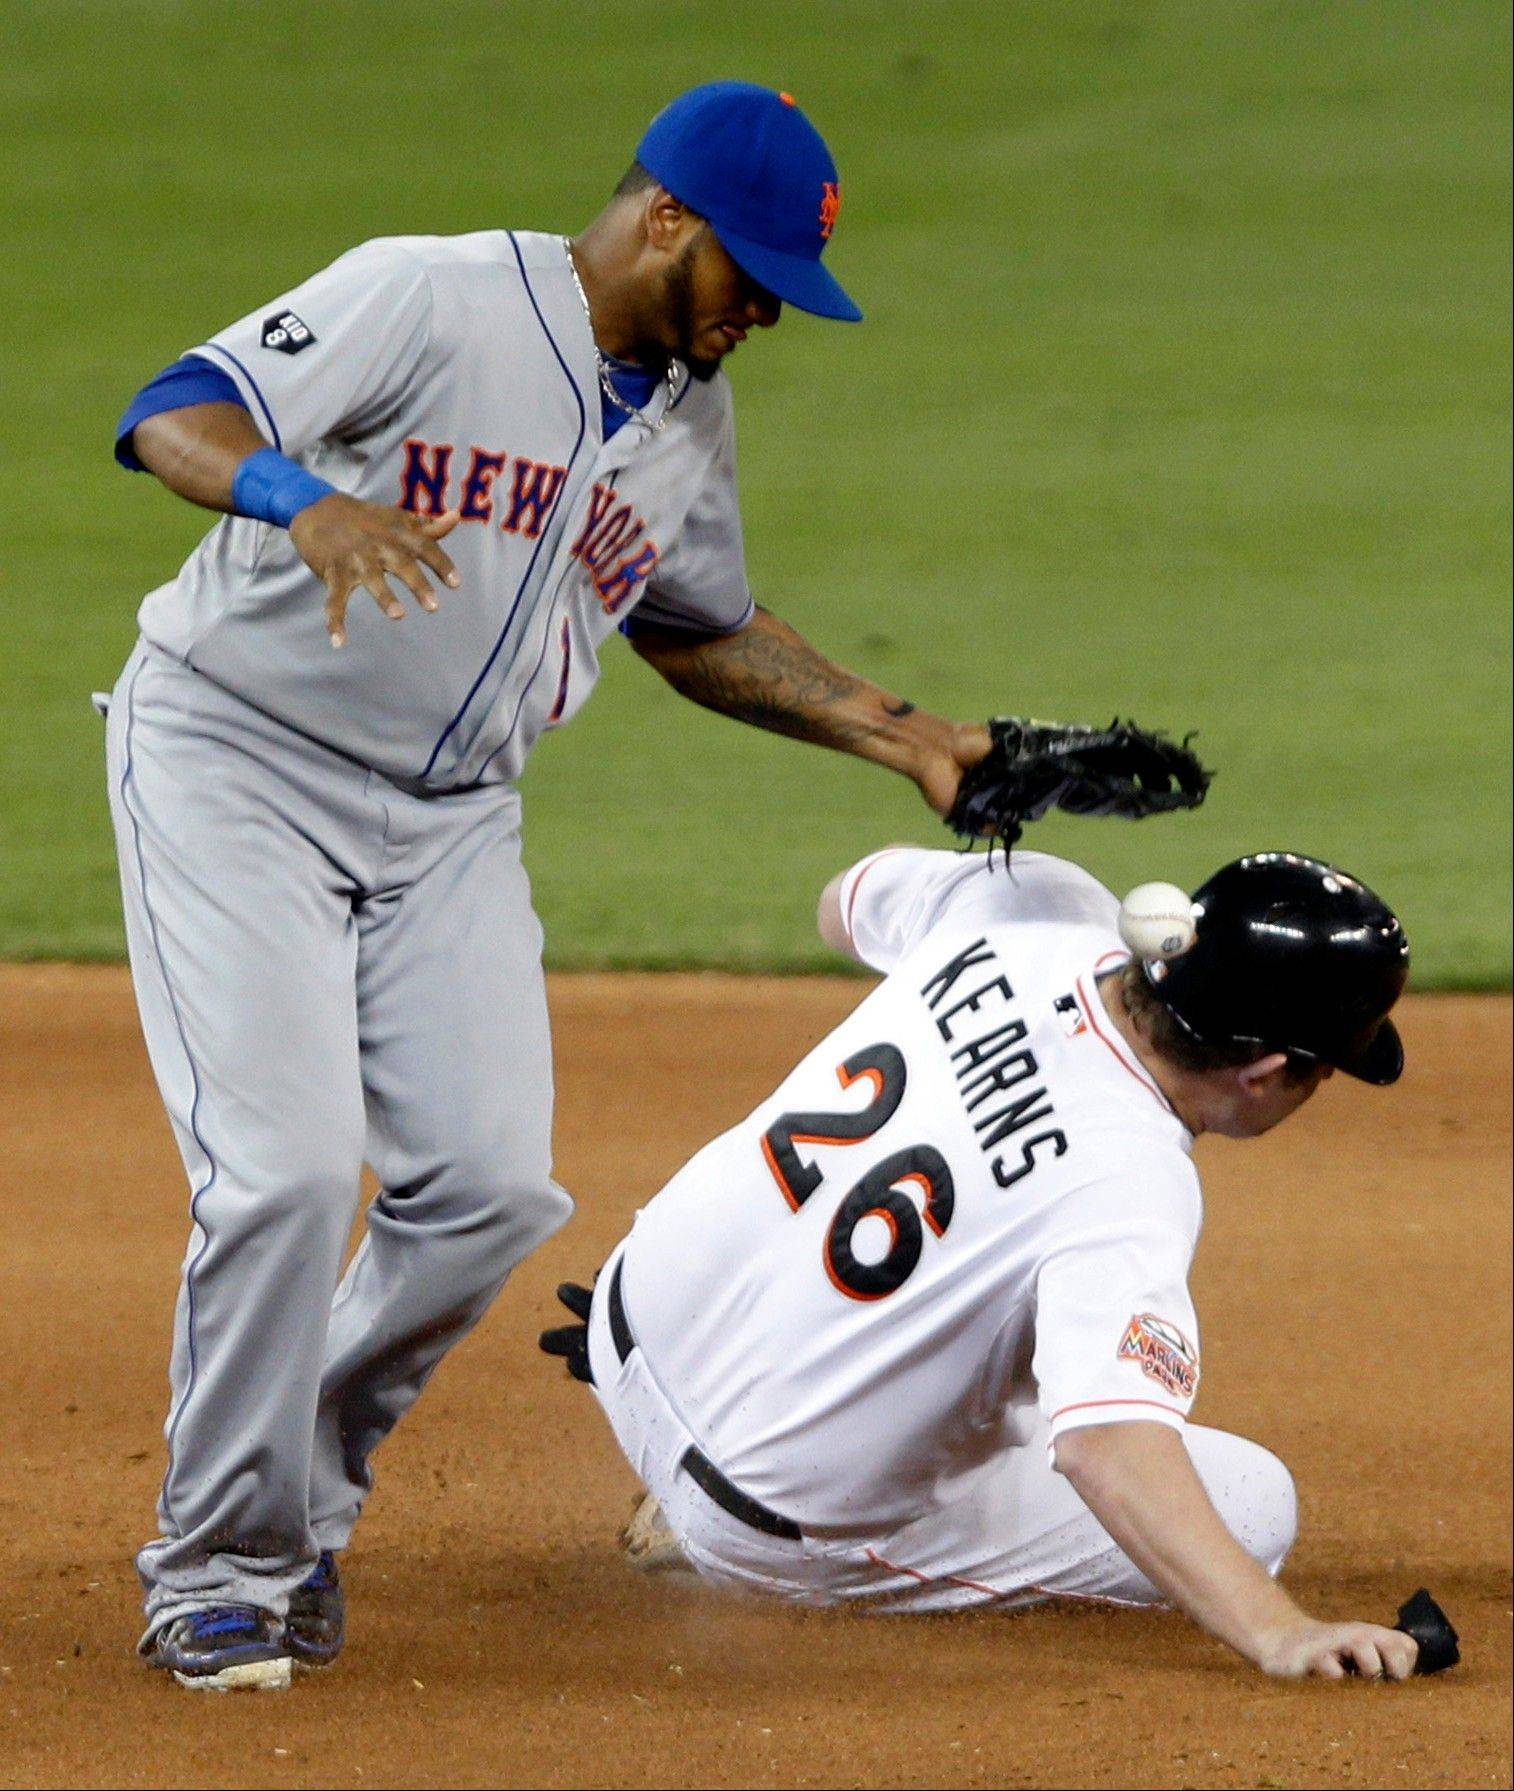 The Marlins� Austin Kearns steals second base as New York Mets second baseman Jordany Valdespin drops the ball in the 10th inning Tuesday in Miami.